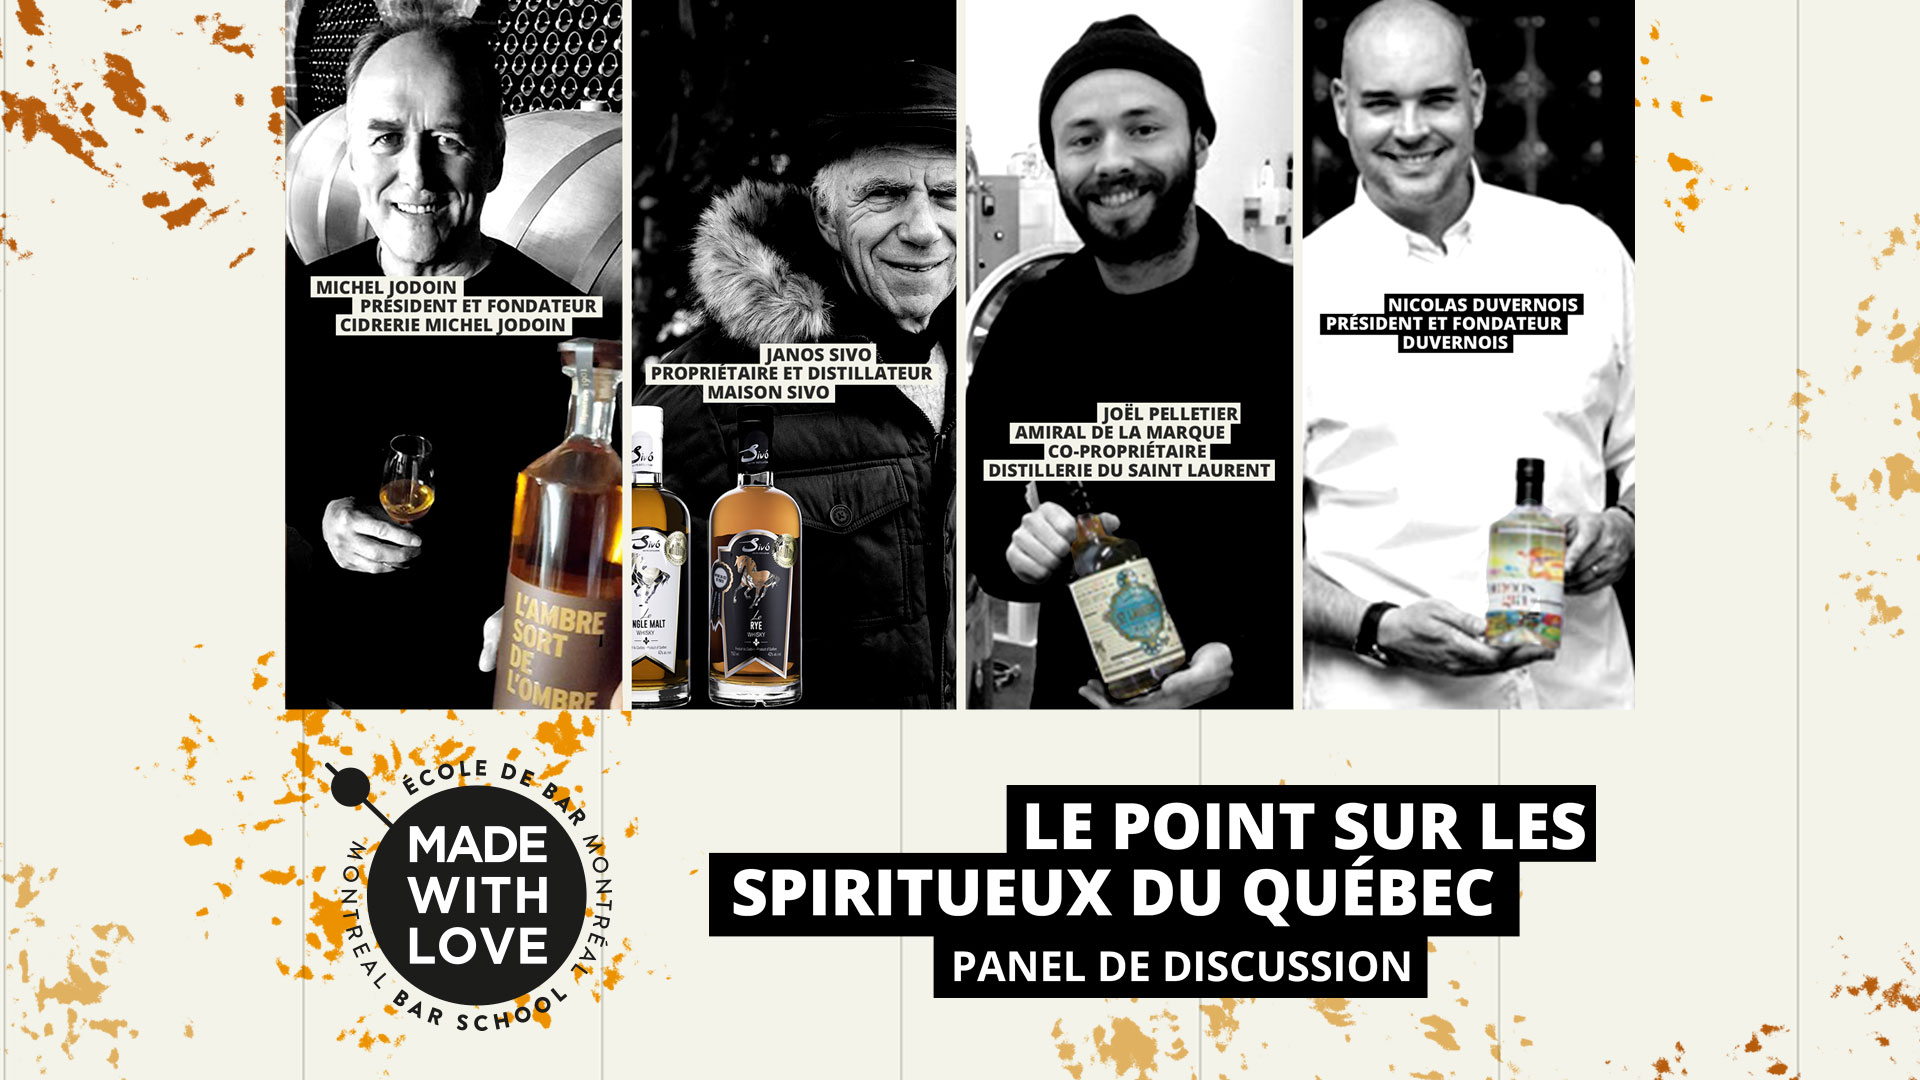 Le point sur les Spiritueux du Québec – discussion panel in French